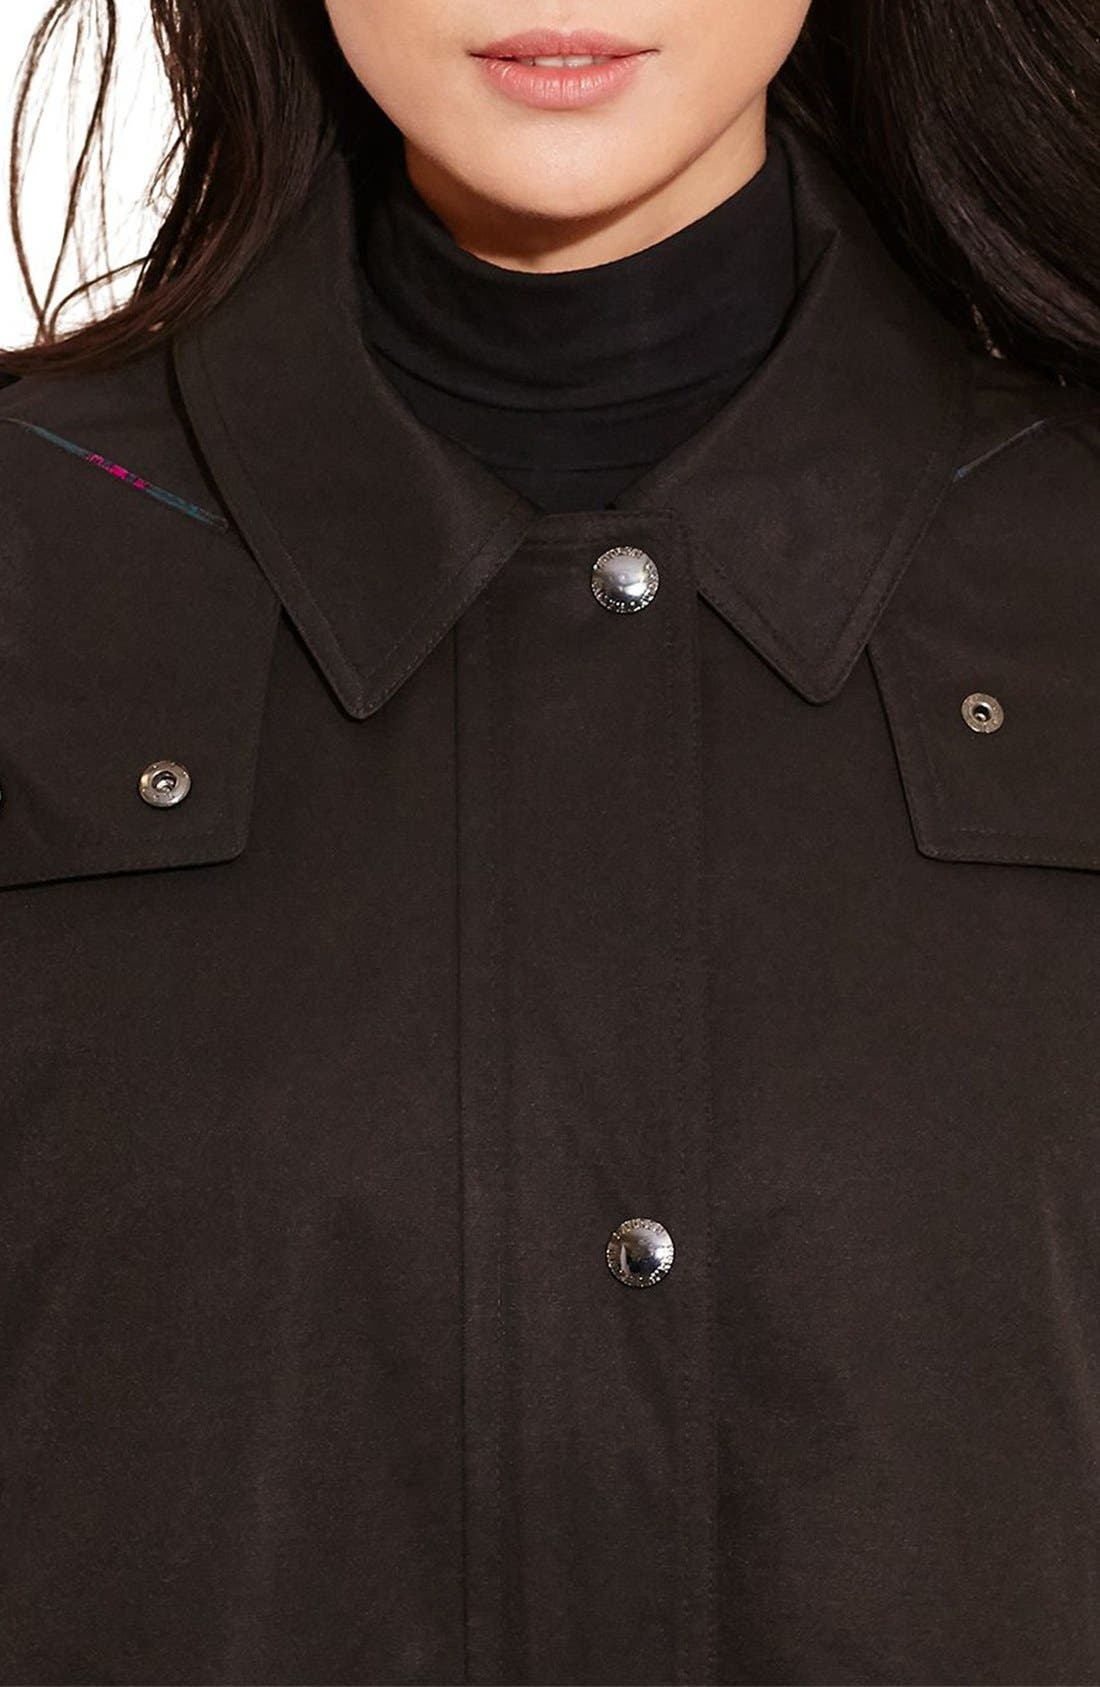 A-Line Jacket with Removable Liner,                             Alternate thumbnail 3, color,                             Black